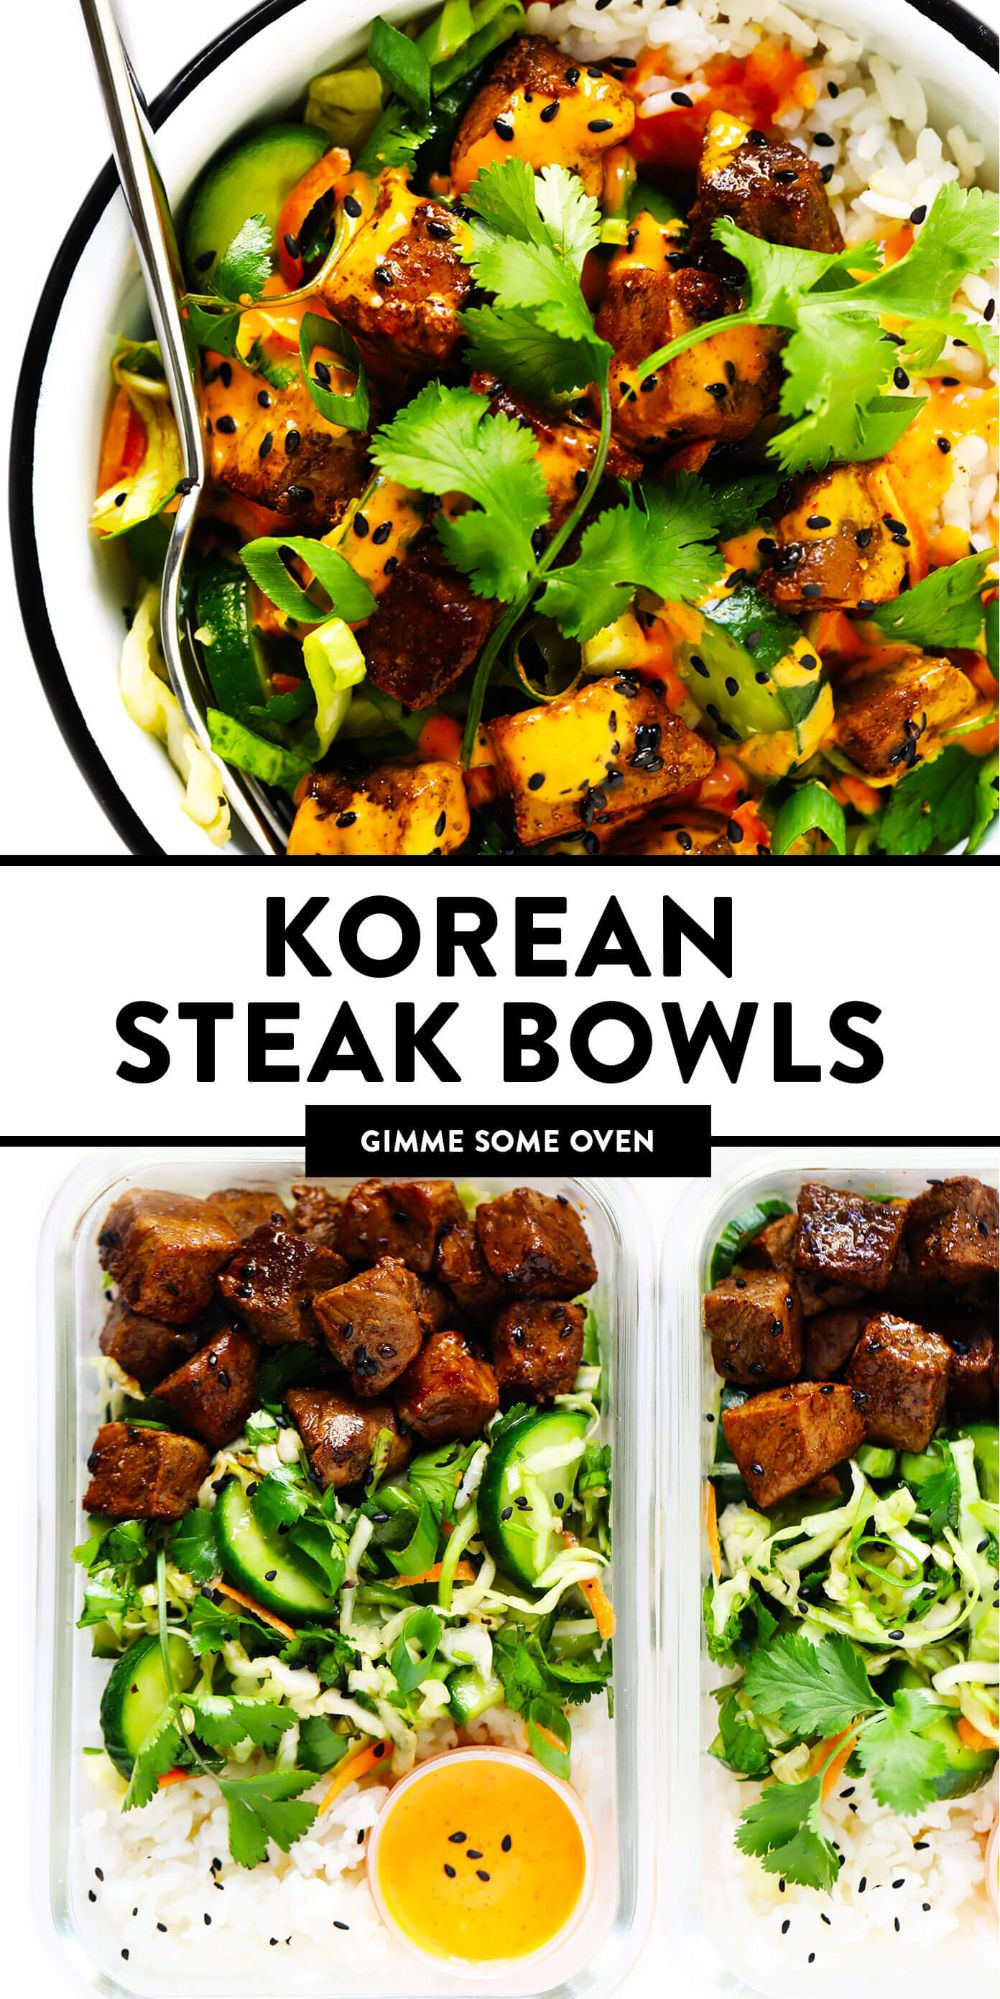 These Korean Steak Bowls are made with juicy seared steak bites (or chicken, pork, shrimp, tofu, tempeh -- you choose), a quick sesame cucumber slaw, your choice of rice or quinoa, and the BEST 2-ingredient spicy gochujang dressing. Perfect for weeknight dinners or easy meal prep, naturally gluten-free, and so delicious! | gimmesomeoven.com #korean #steak #beef #bowl #salad #slaw #rice #dinner #mealprep #glutenfree #healthy